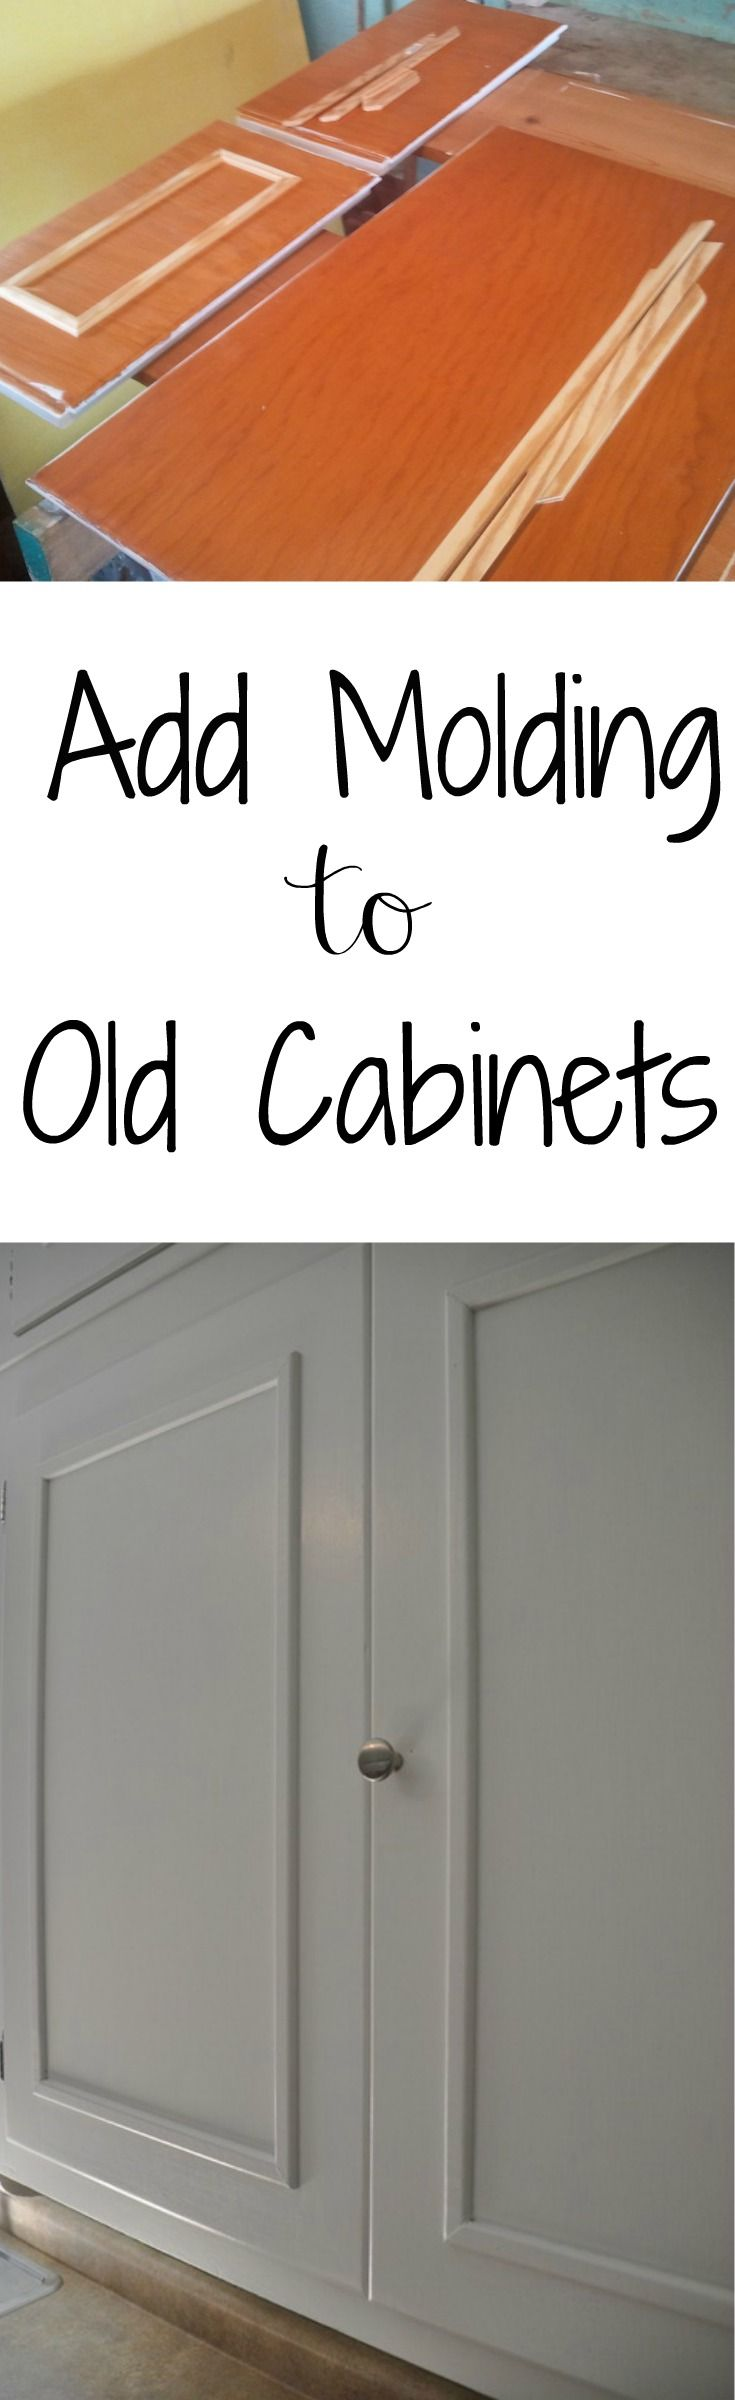 95 best images about built in makeover ideas on pinterest for How to update cabinets